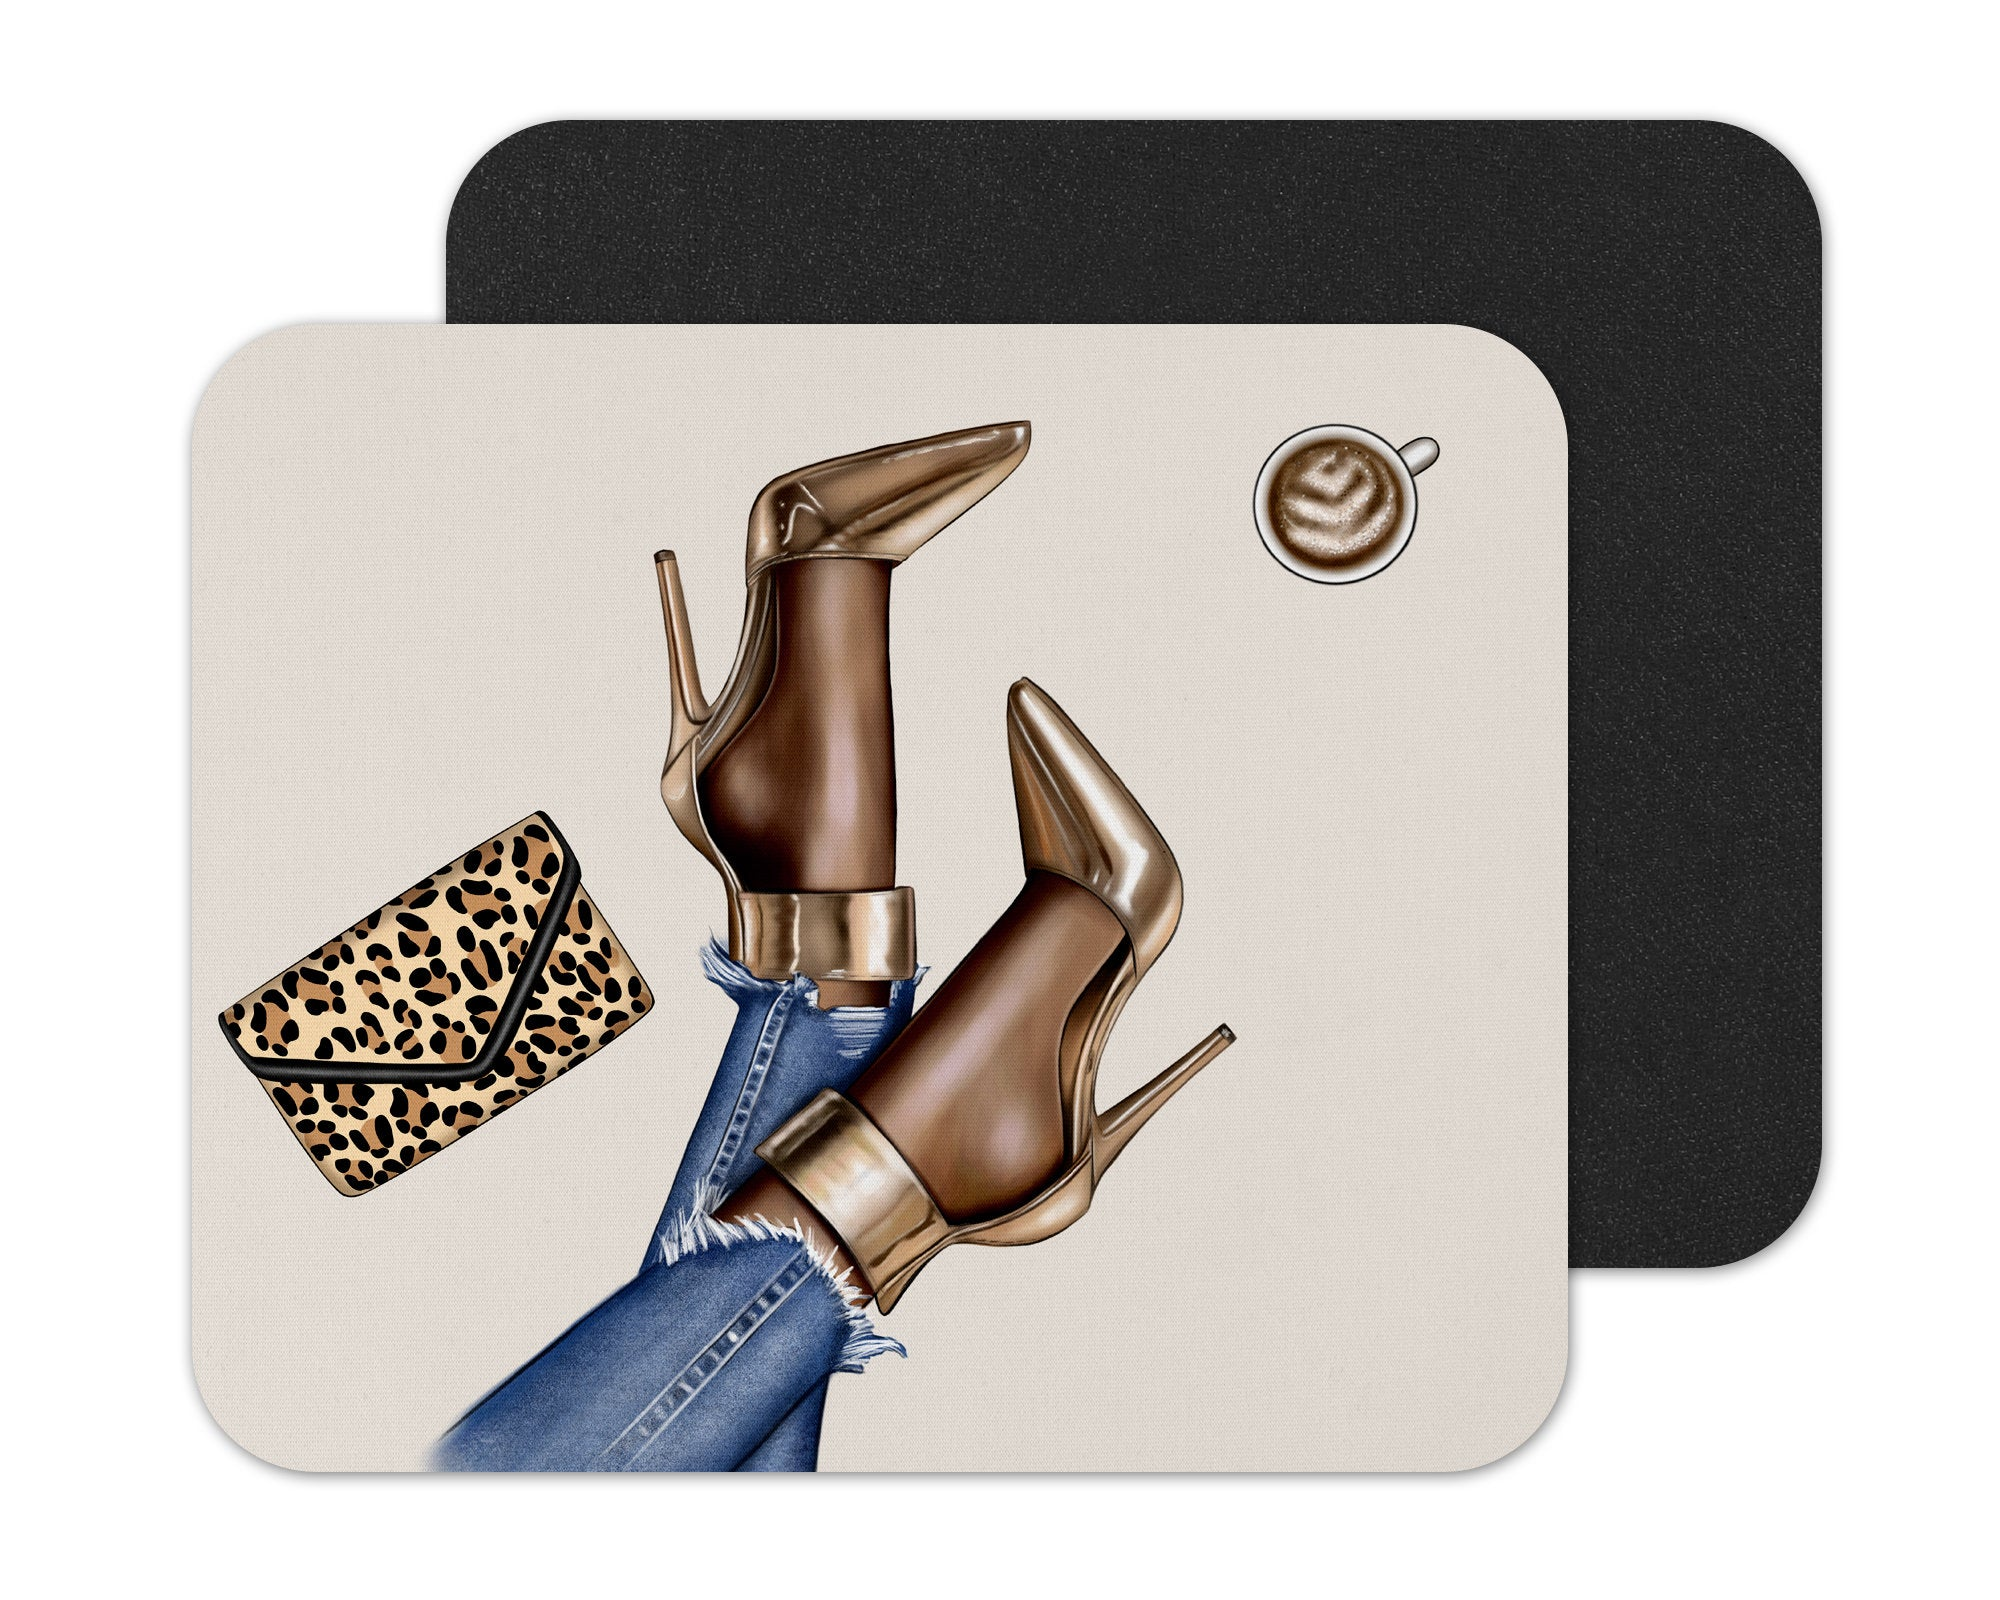 Black Woman Styling Mouse Pad